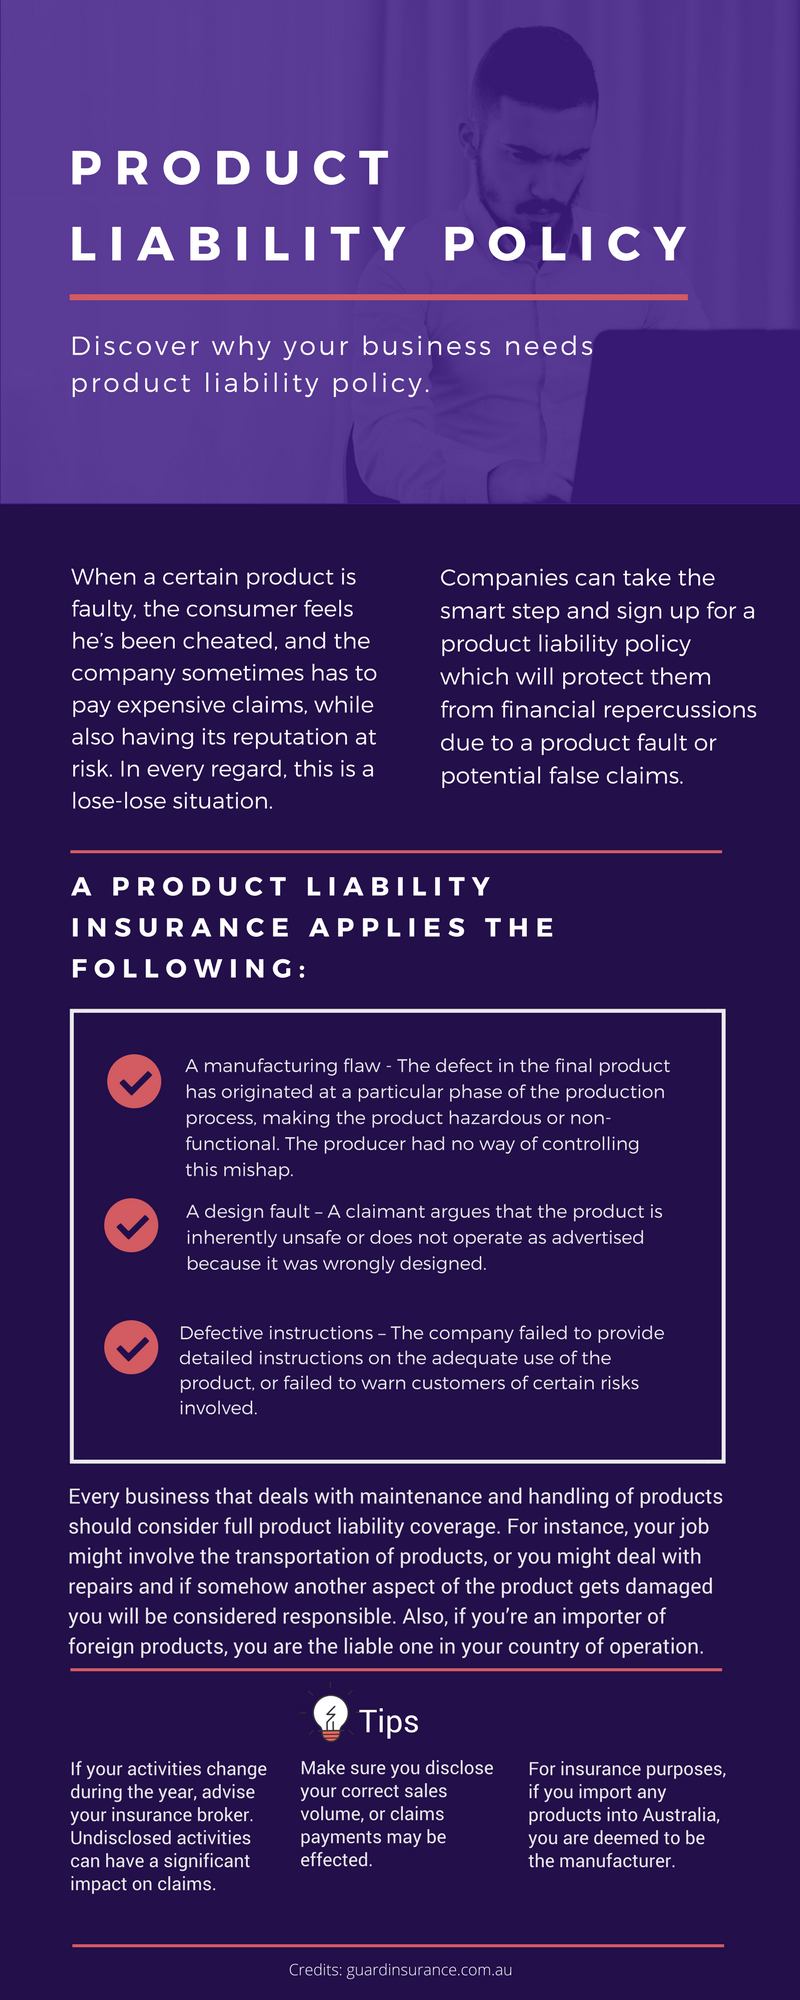 Product Liability Insurance Protect Your Business Against